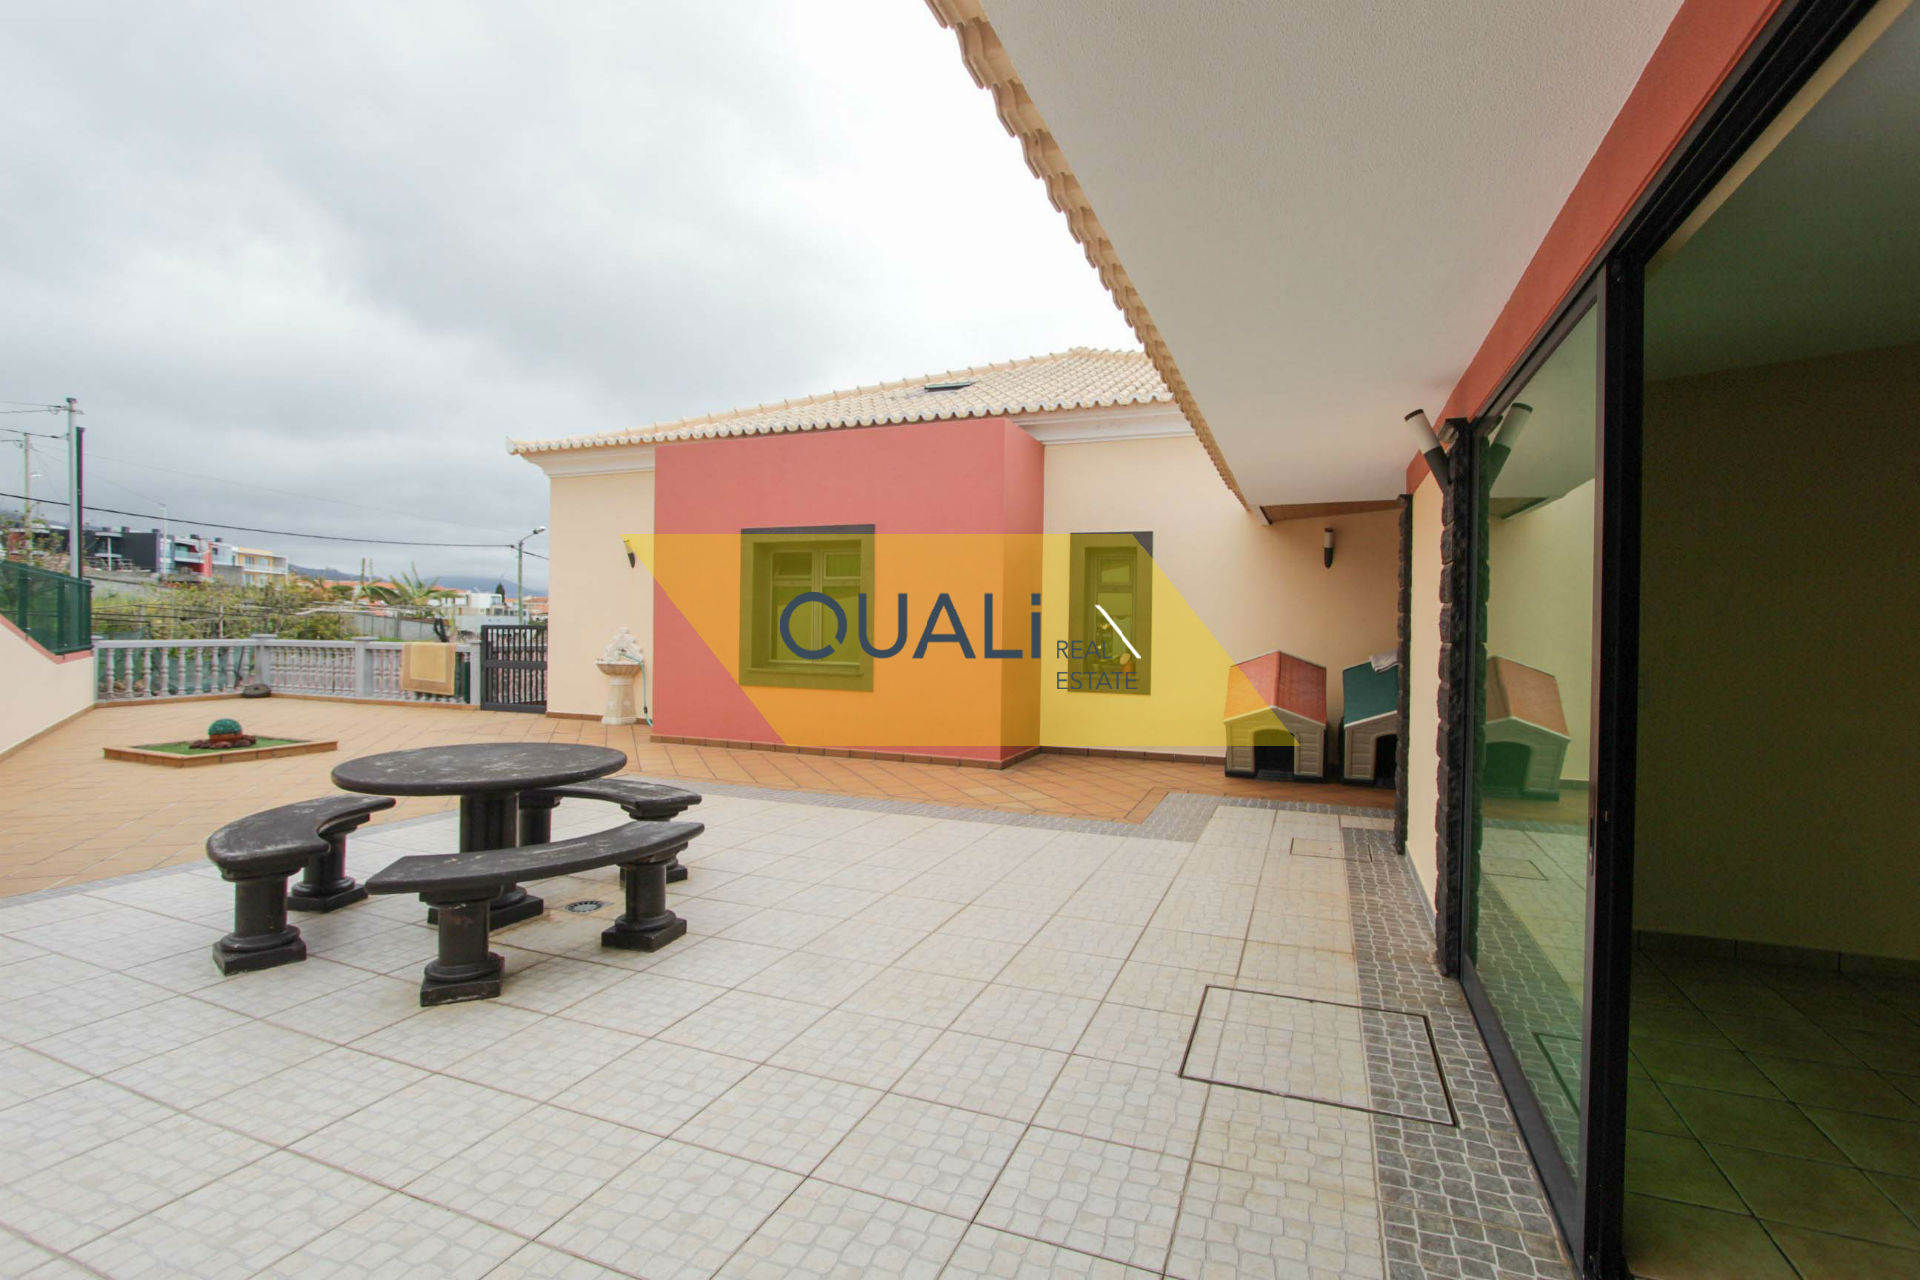 Uni-Familie T3 + Dachgeschoss mit Pool in Ponta do Sol - Insel Madeira. € 382.000